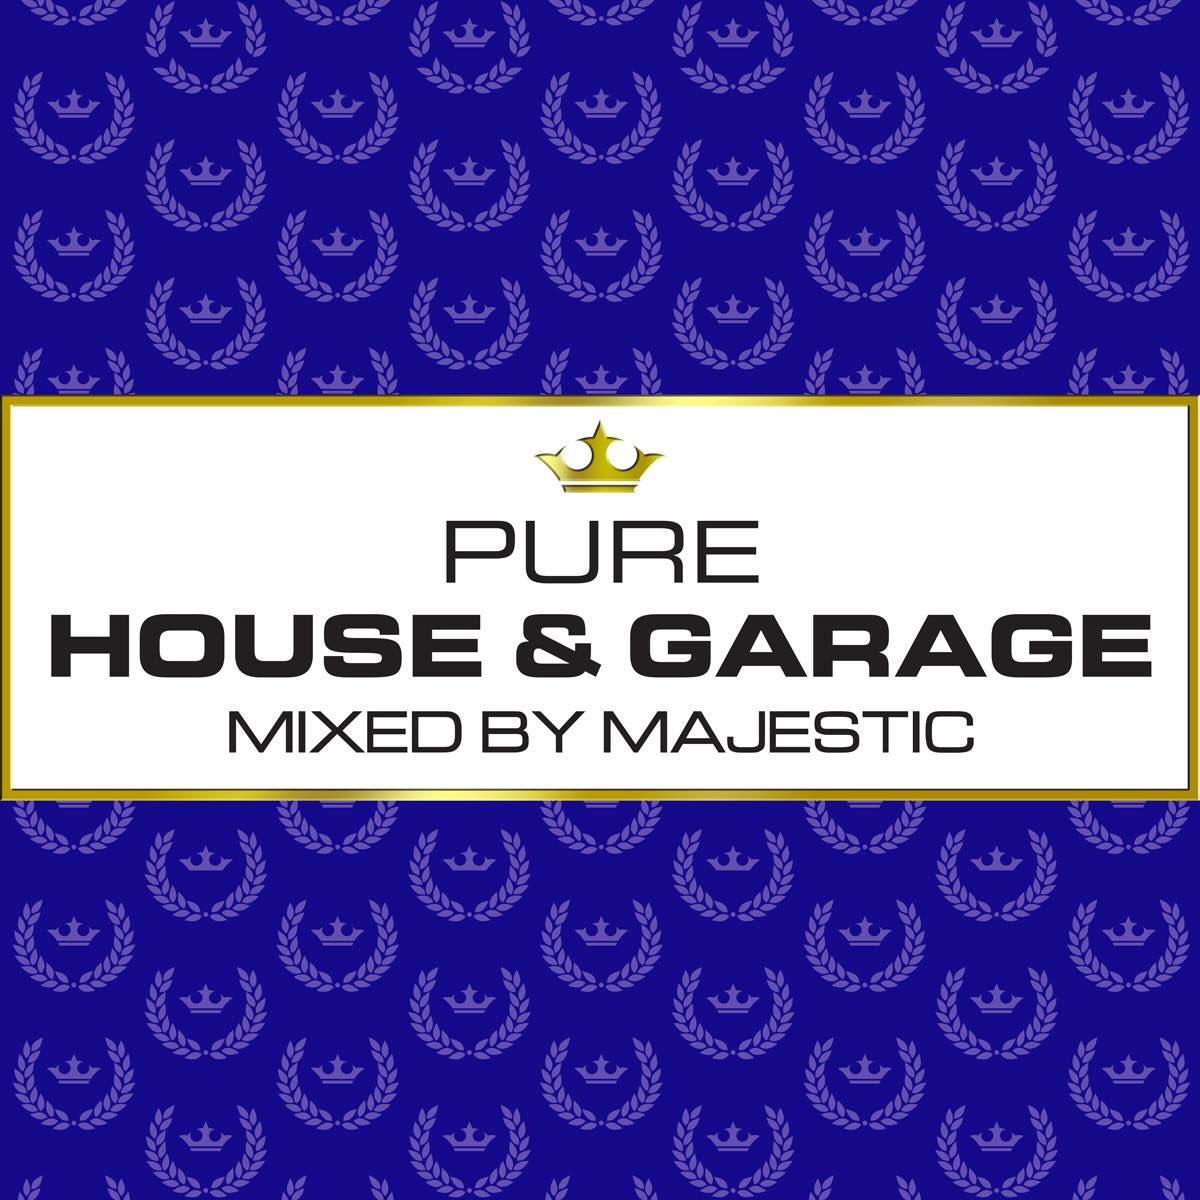 Could everybody please press retweet & Support MAJESTIC'S Pure House & Garage Album avai now ITunes @MajesticOnline https://t.co/lJKN0aWN6n